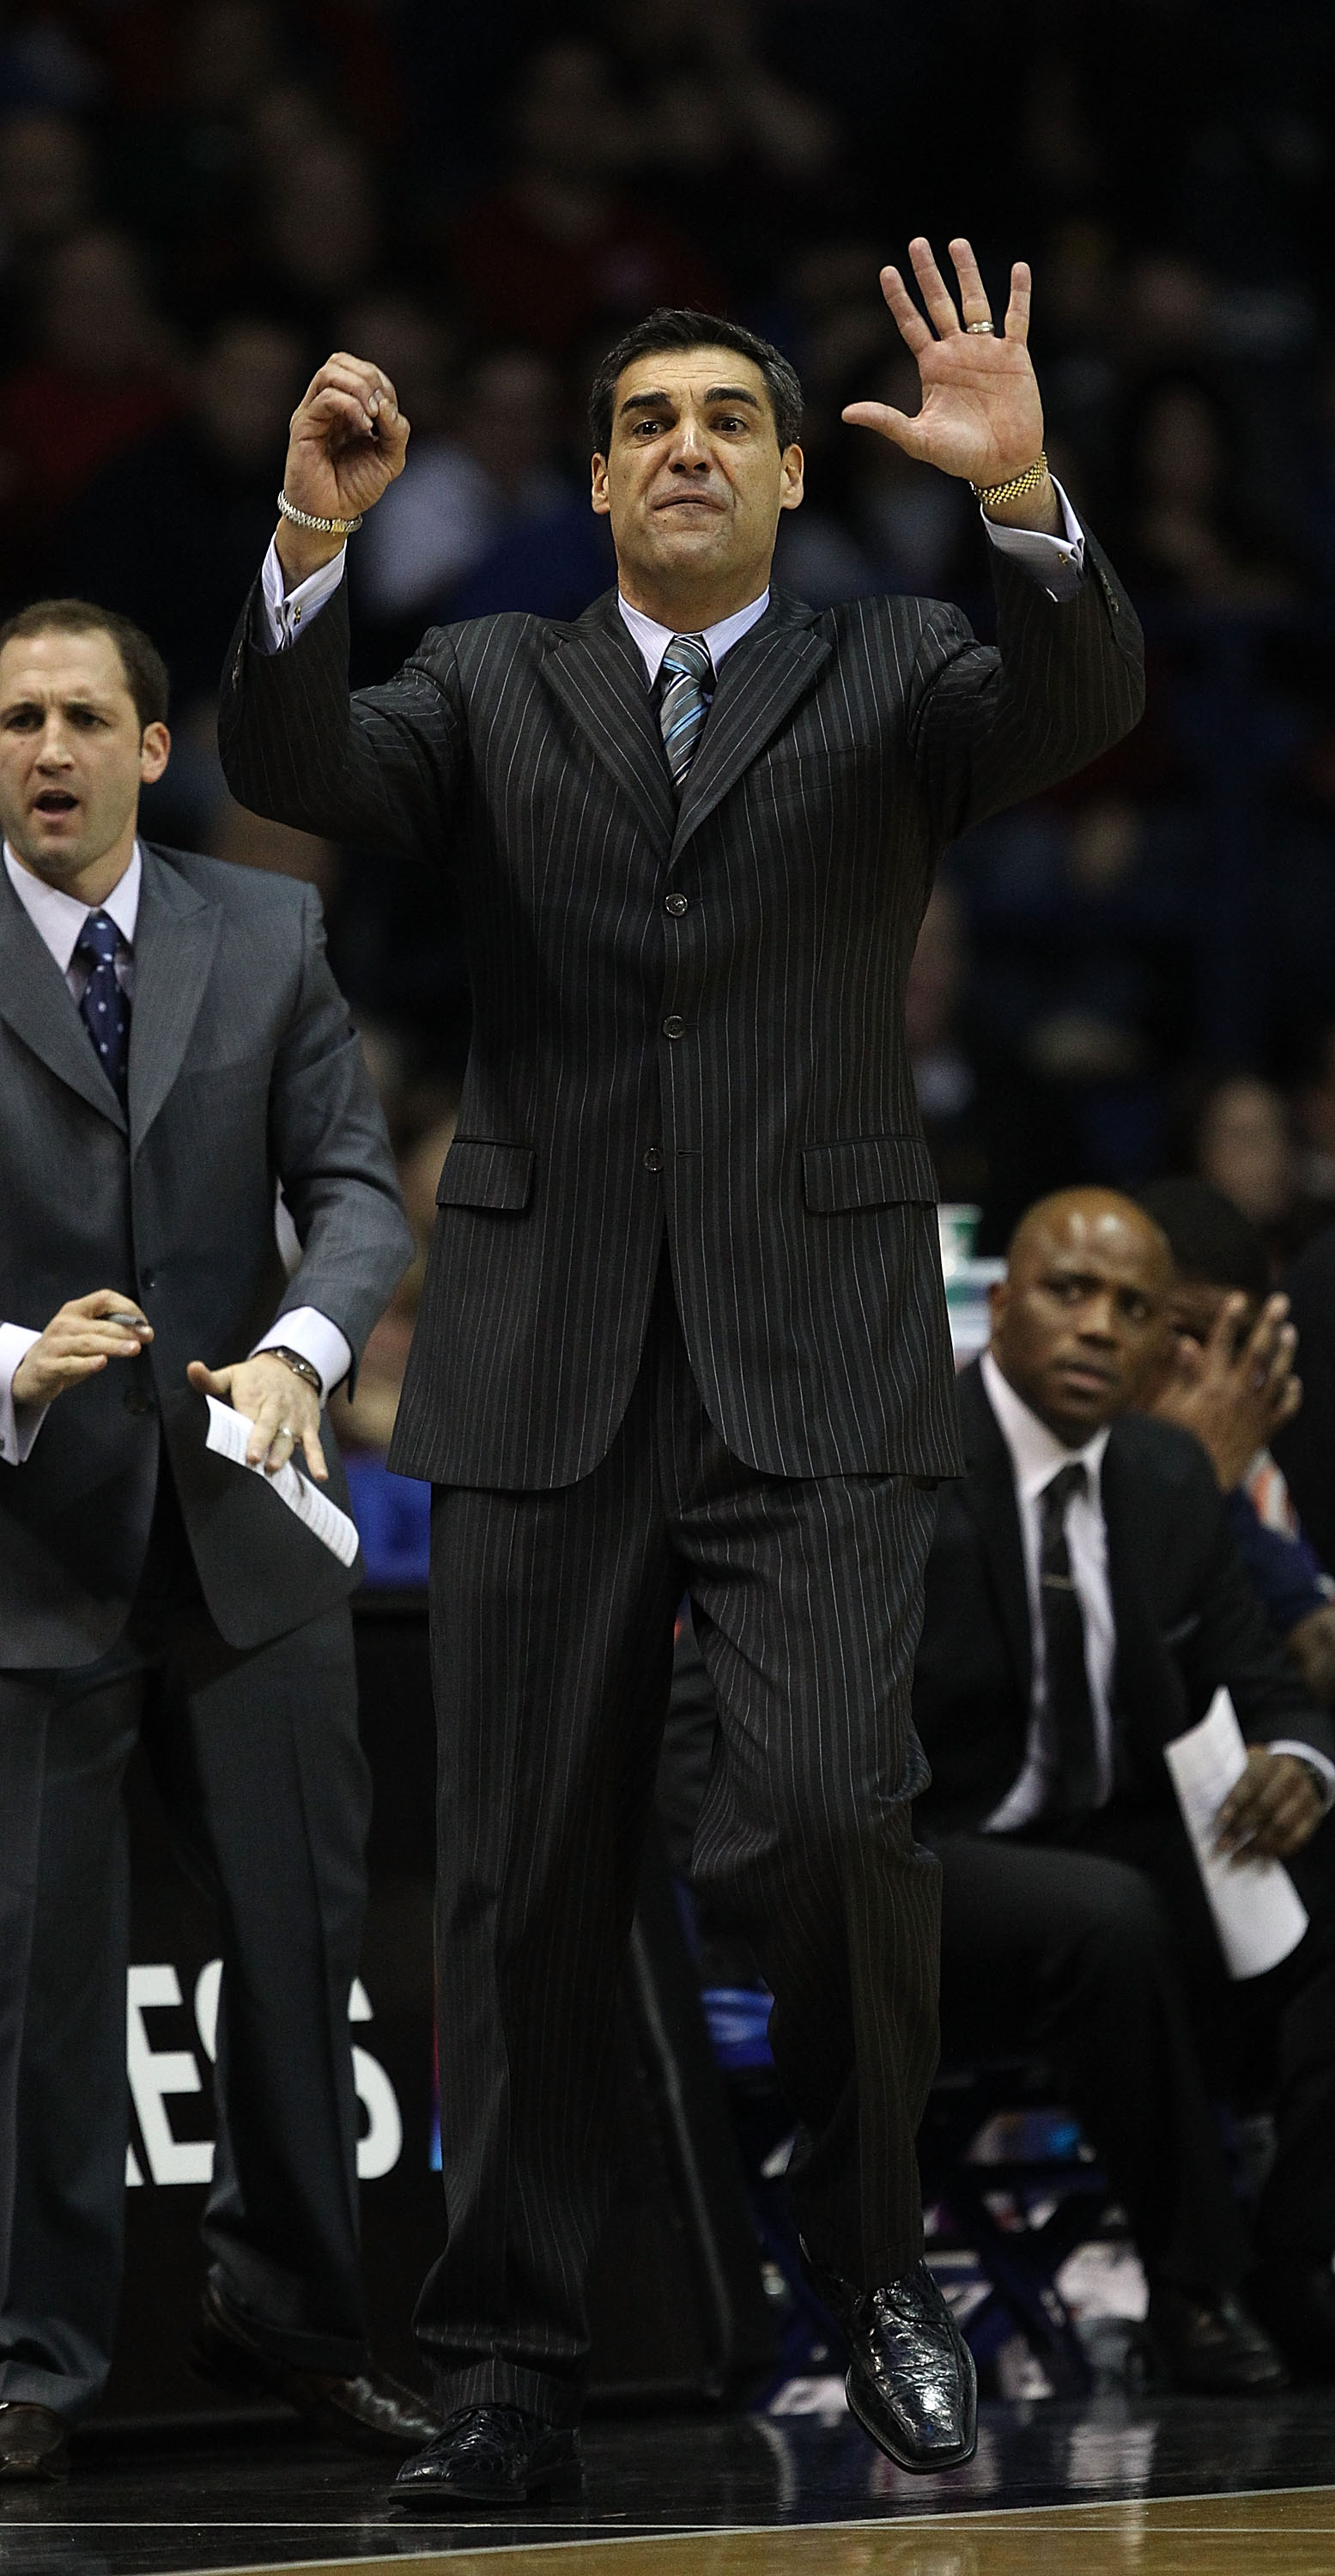 ROSEMONT, IL - FEBRUARY 19: Head coach Jay Wright of the Villanova Wildcats gives insructions to his team during a game against the DePaul Blue Demons at the Allstate Arena on February 19, 2011 in Rosemont, Illinois. Villanova defeated DePaul 77-75 in ove